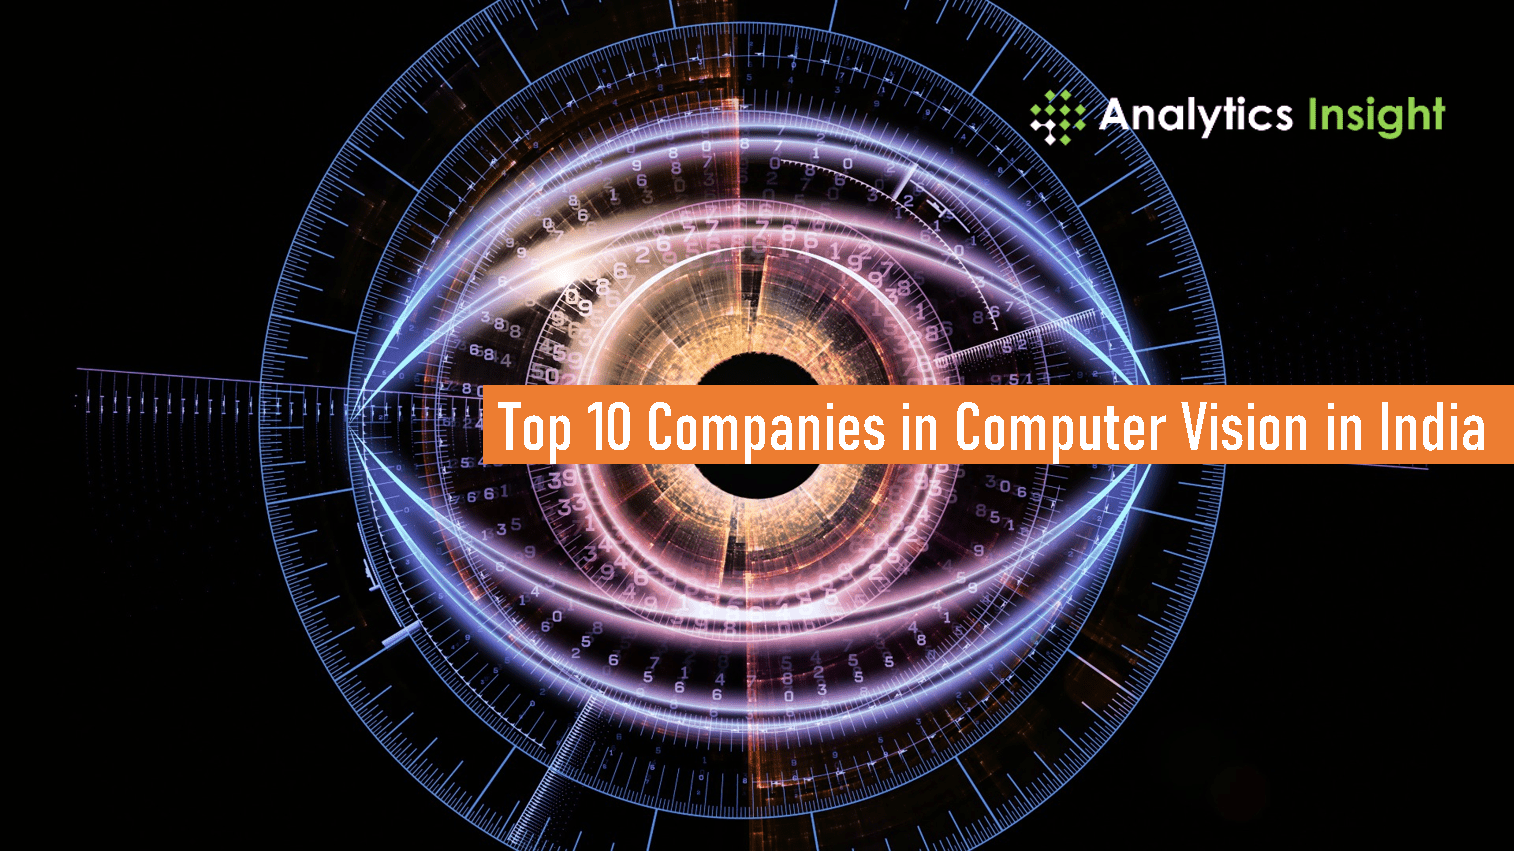 Top 10 Computer Vision Companies in India to Watch